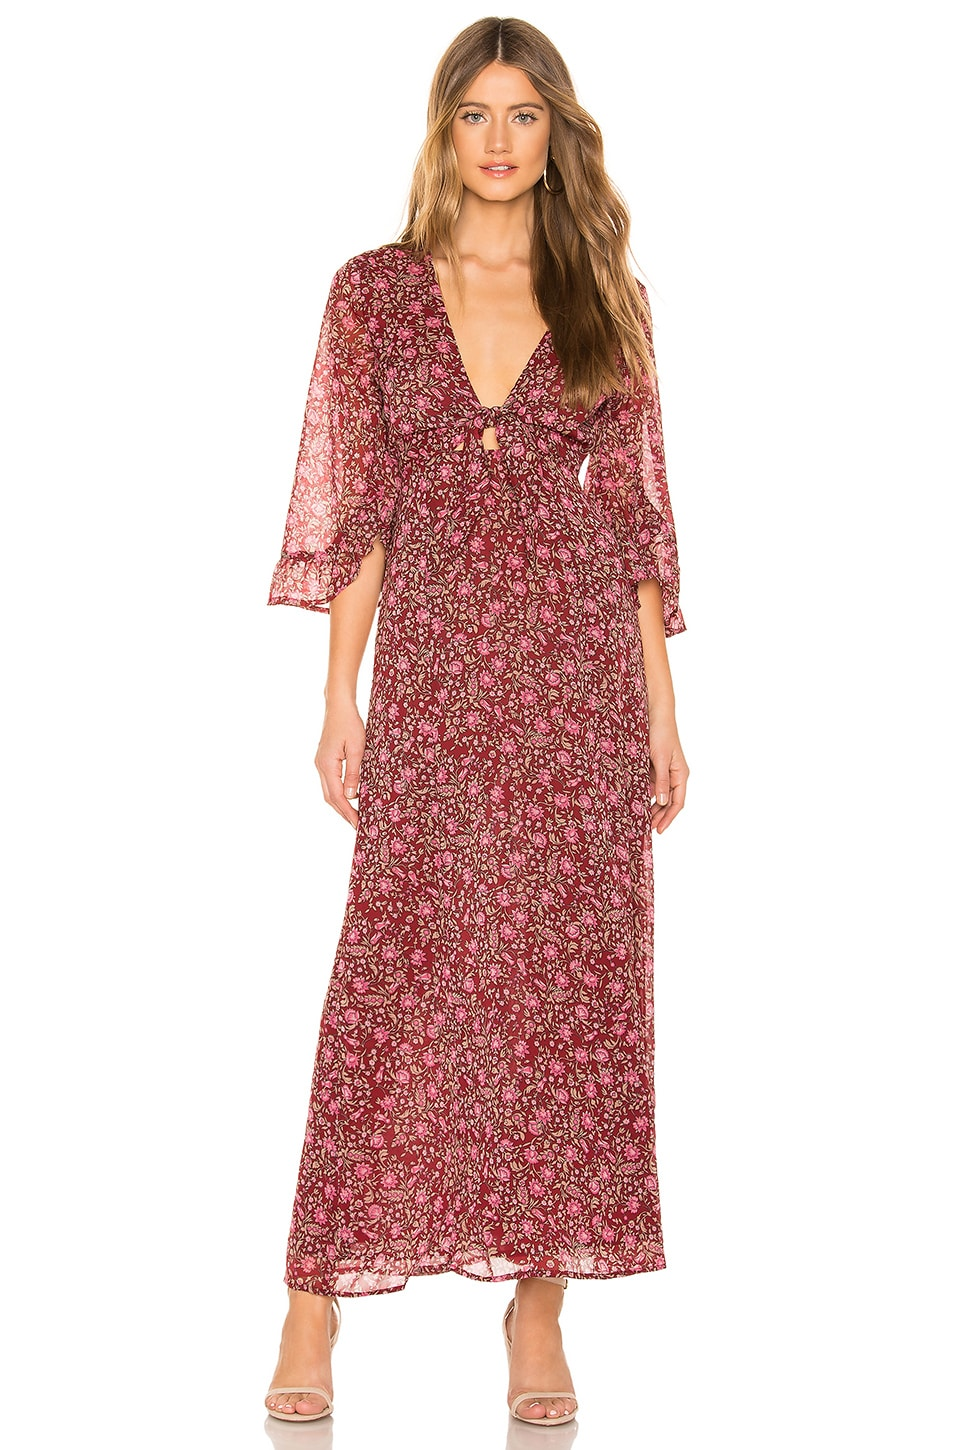 AMUSE SOCIETY Besos Besos Baby Knot Front Maxi Dress in Wine